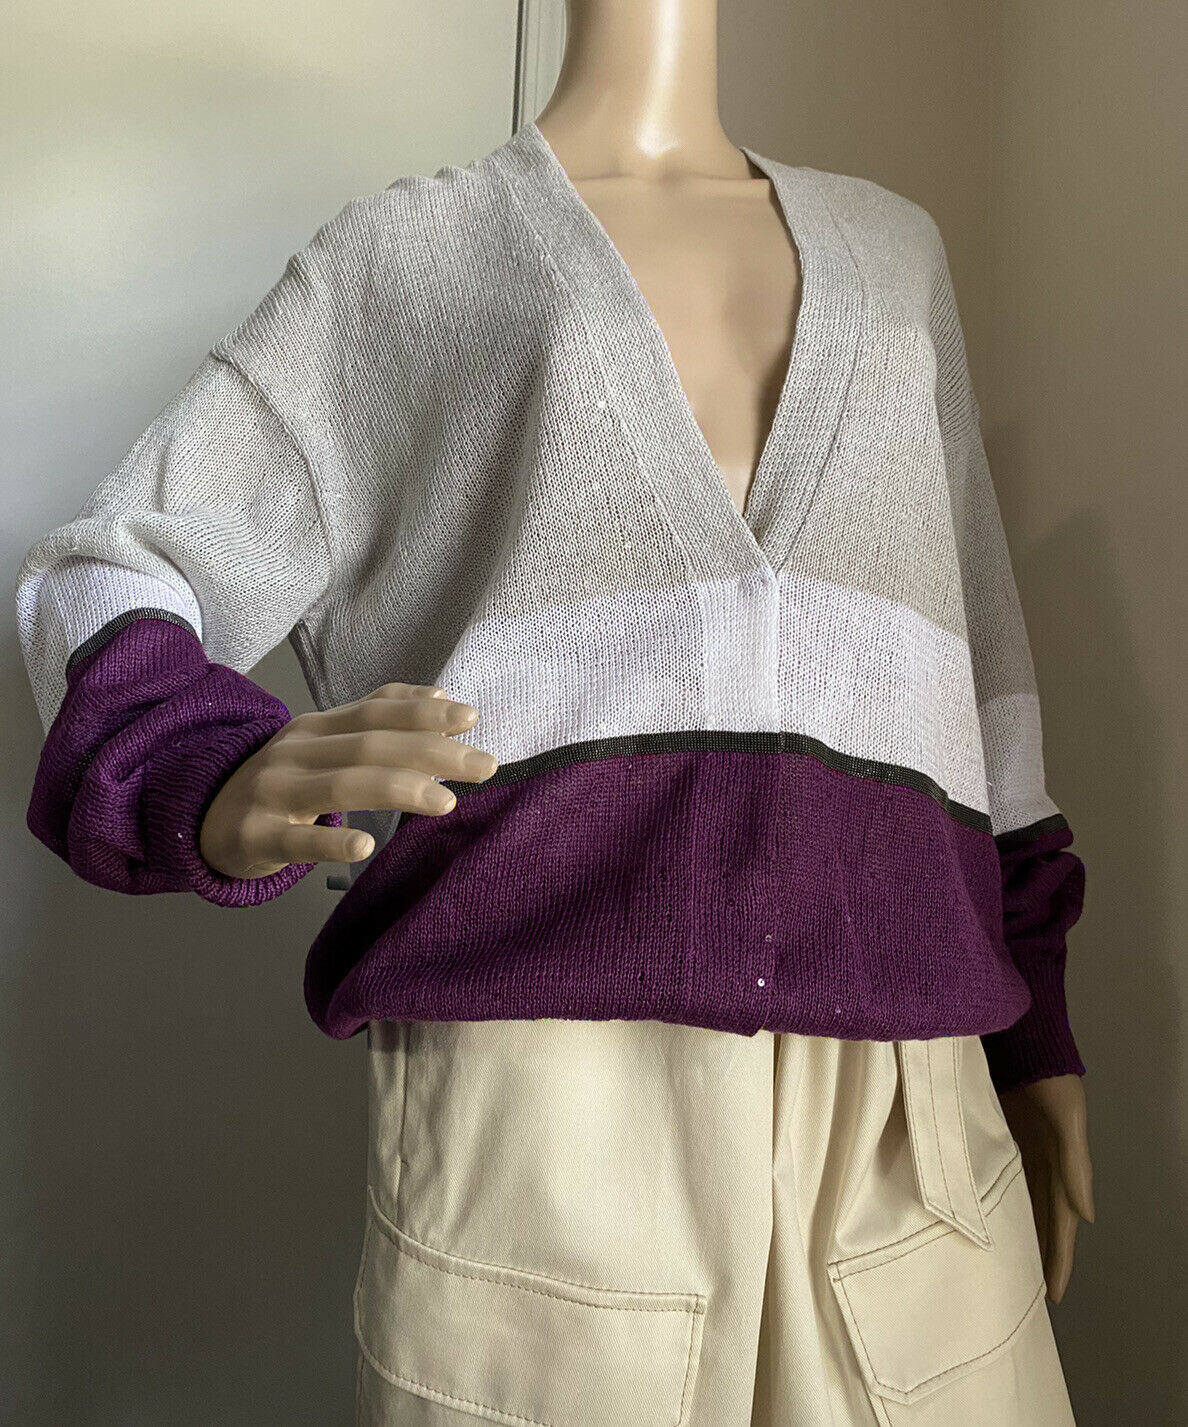 New $2195 Brunello Cucinelli Women Linen/Silk Colorblocked Cardigan Sweater L